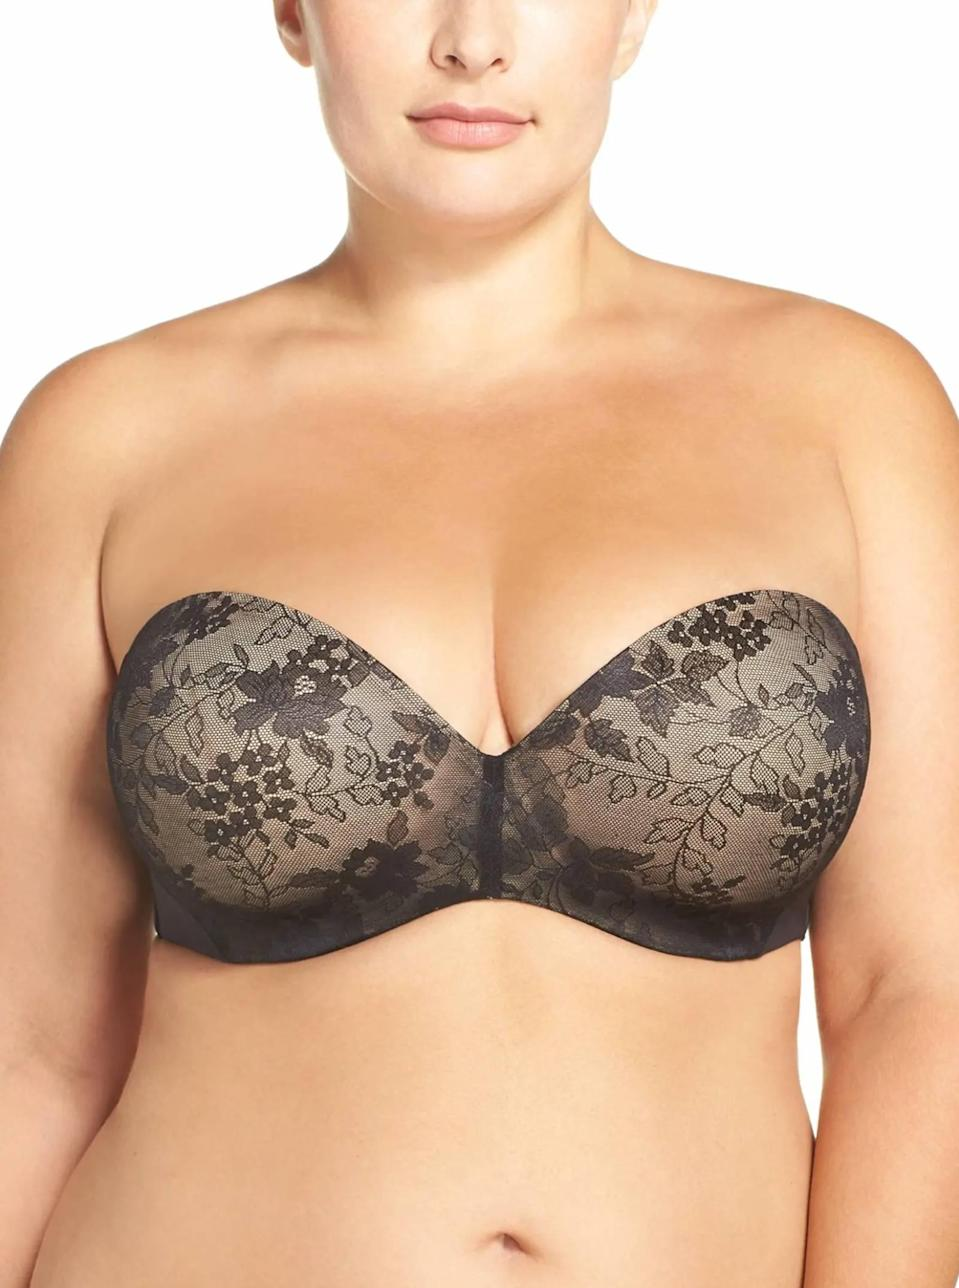 "<p><strong>Key selling points:</strong> Strapless bras can be hard to find, especially in plus size. This one features seamless and secure foam-padded cups in intricate lace, along with optional straps in case you want even more support.</p> <p><strong>What customers say:</strong> ""I've been looking for a strapless bra that works for years. FOUND IT!!!!! This bra is comfortable and holds my girls (42DDD) in place without fear of falling out. I'll finally be able to wear my strapless tops and dresses again. Love it!"" — <em>MissVHS, reviewer on</em> <a href=""https://cna.st/affiliate-link/8GHpbfKbHzjMYq35aMwp743ec7GFgbeJYpPz99aay2zVYcK5bvCicGU7C2Ld3ysaBCbsr7AMnu1y6bikC8V9RUxm6RCQK8TrvfW2UWruzoVXyTHvgFB64egm6xRpecrqBvdzbGbb637nuQiXP8cqpVYLMPvwTrvGL6Q8?cid=606b52e05ffe9b4fe6a6801d"" rel=""nofollow noopener"" target=""_blank"" data-ylk=""slk:Nordstrom"" class=""link rapid-noclick-resp""><em>Nordstrom</em></a></p> $65, Nordstrom. <a href=""https://www.nordstrom.com/s/curvy-couture-strapless-underwire-push-up-bra-plus-size/5921599"" rel=""nofollow noopener"" target=""_blank"" data-ylk=""slk:Get it now!"" class=""link rapid-noclick-resp"">Get it now!</a>"